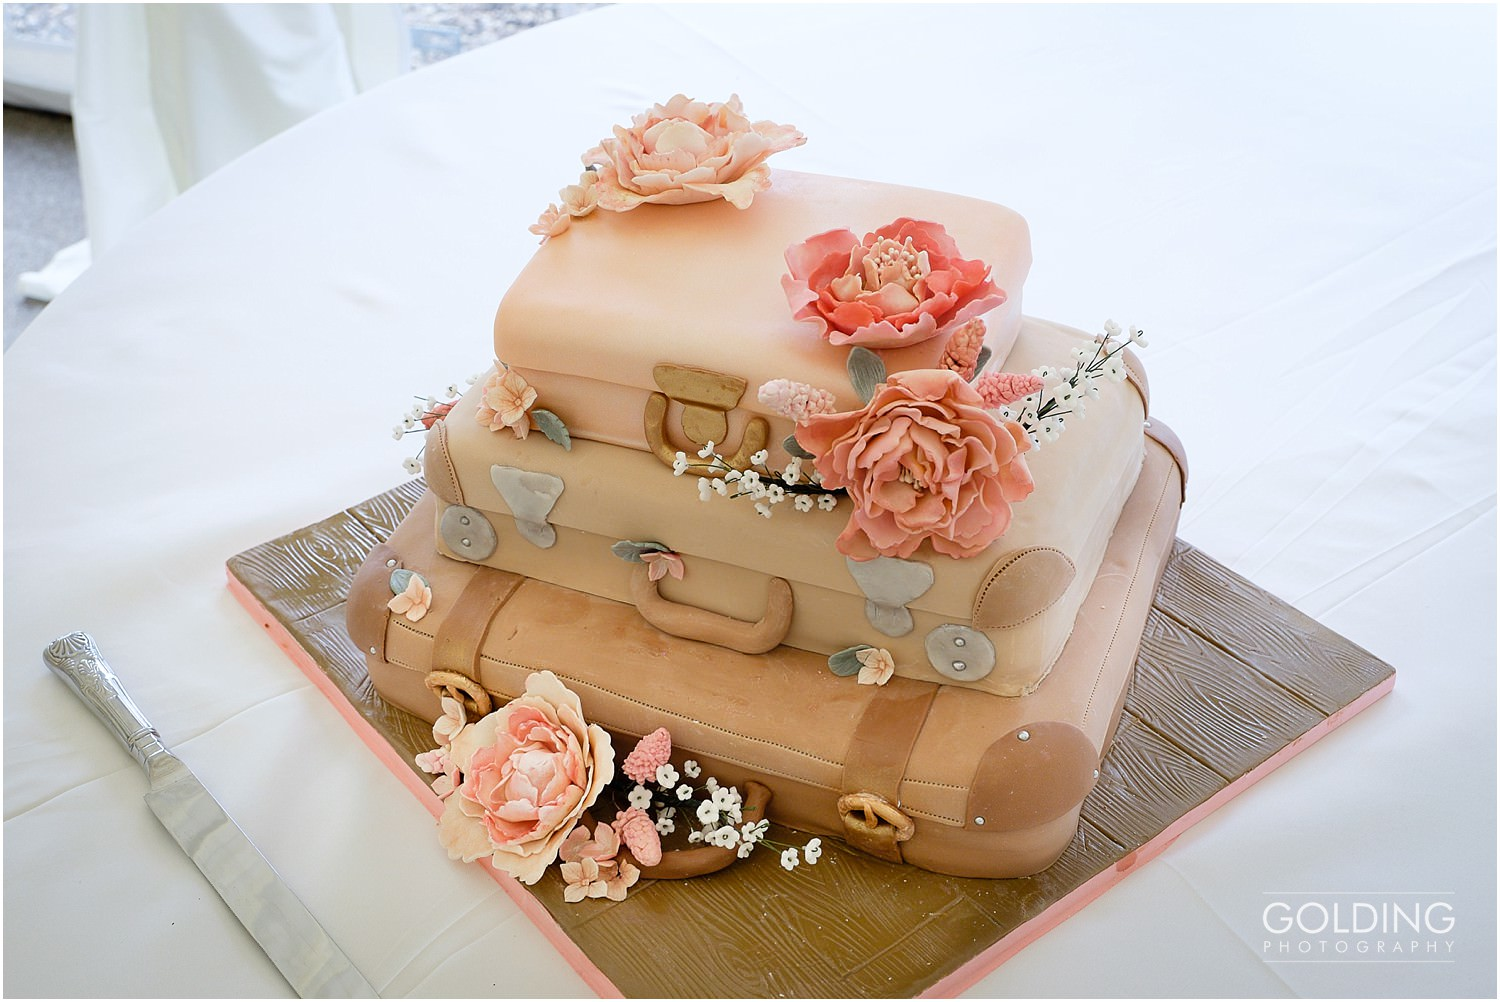 Wedding Cakes – What are your options?